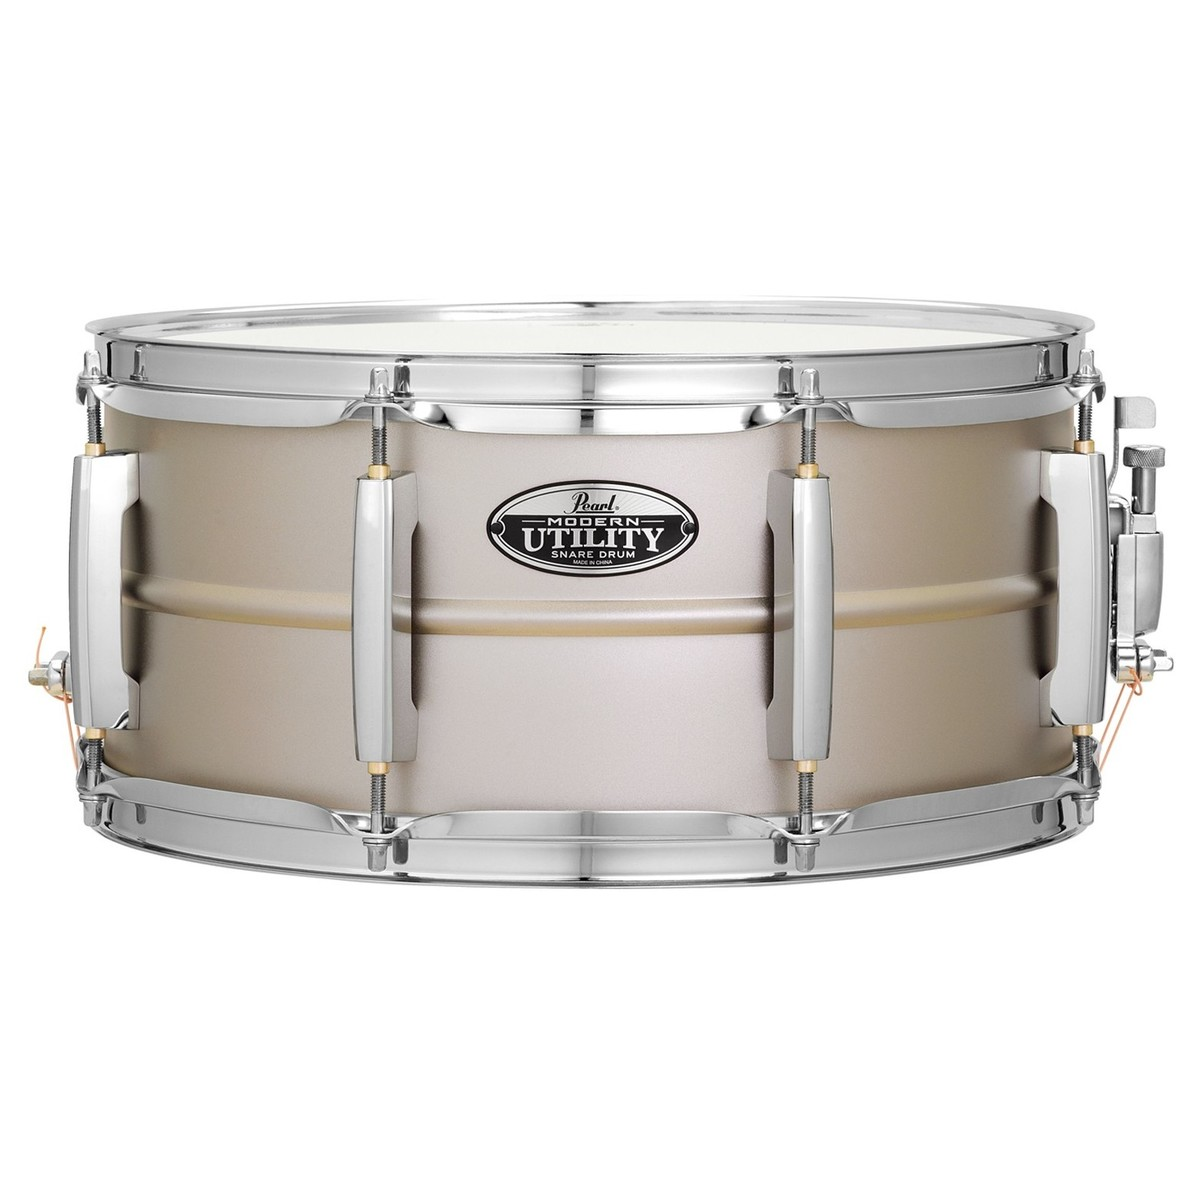 pearl modern utility steel 14 39 39 x 6 5 39 39 snare drum at gear4music. Black Bedroom Furniture Sets. Home Design Ideas